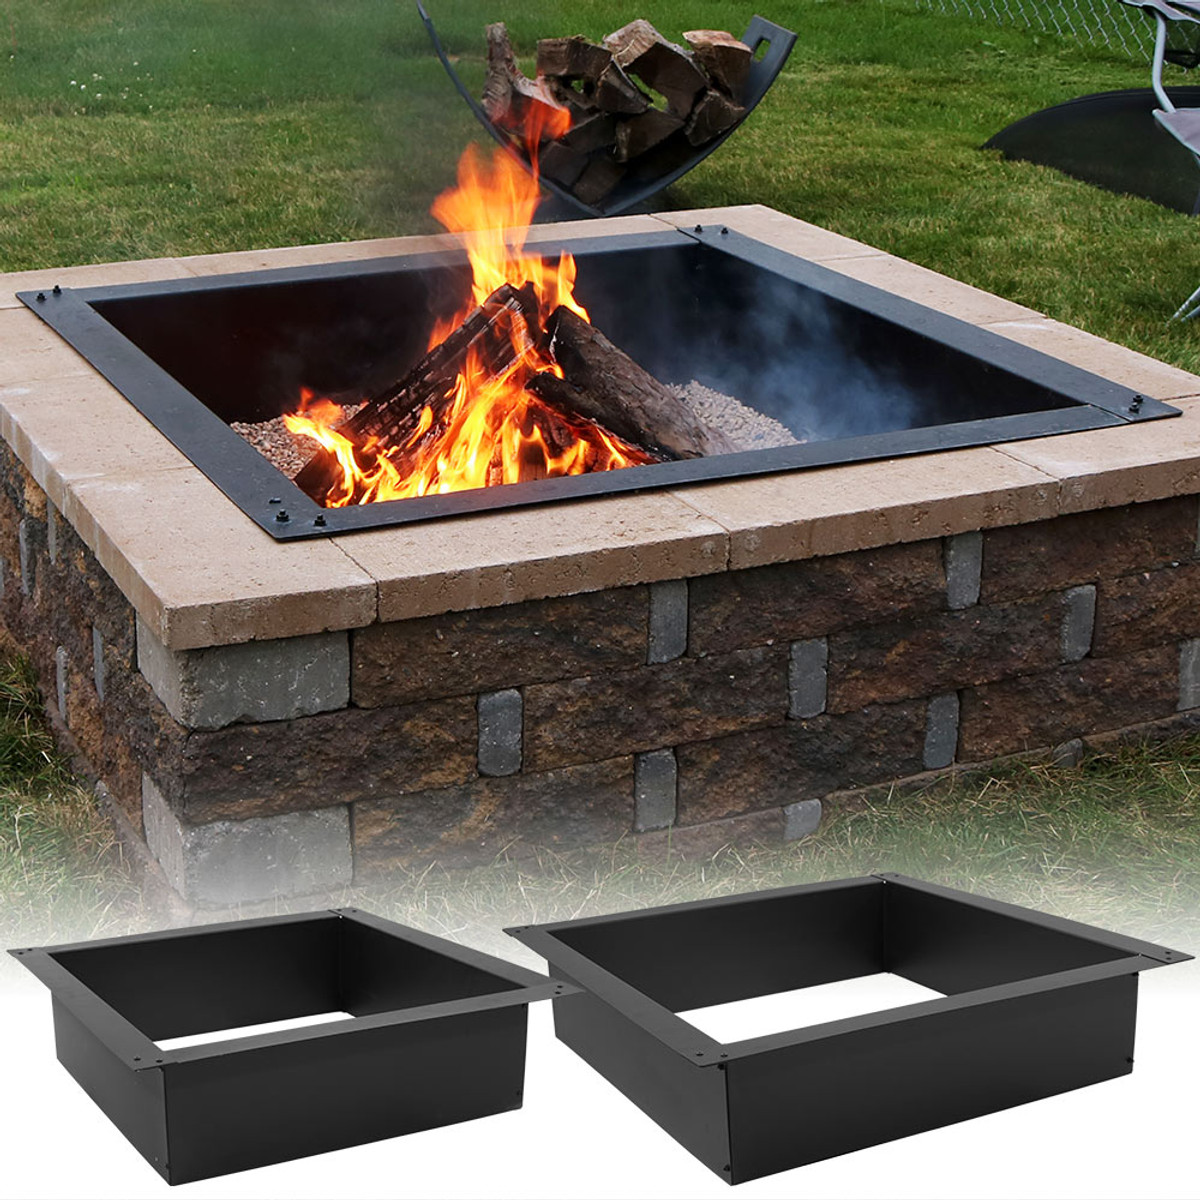 Sunnydaze Square Heavy-Duty Fire Pit Rim/Liner, DIY Fire Pit Above or  In-Ground, Steel - Sunnydaze Decor Heavy-Duty Square Fire Pit Liner